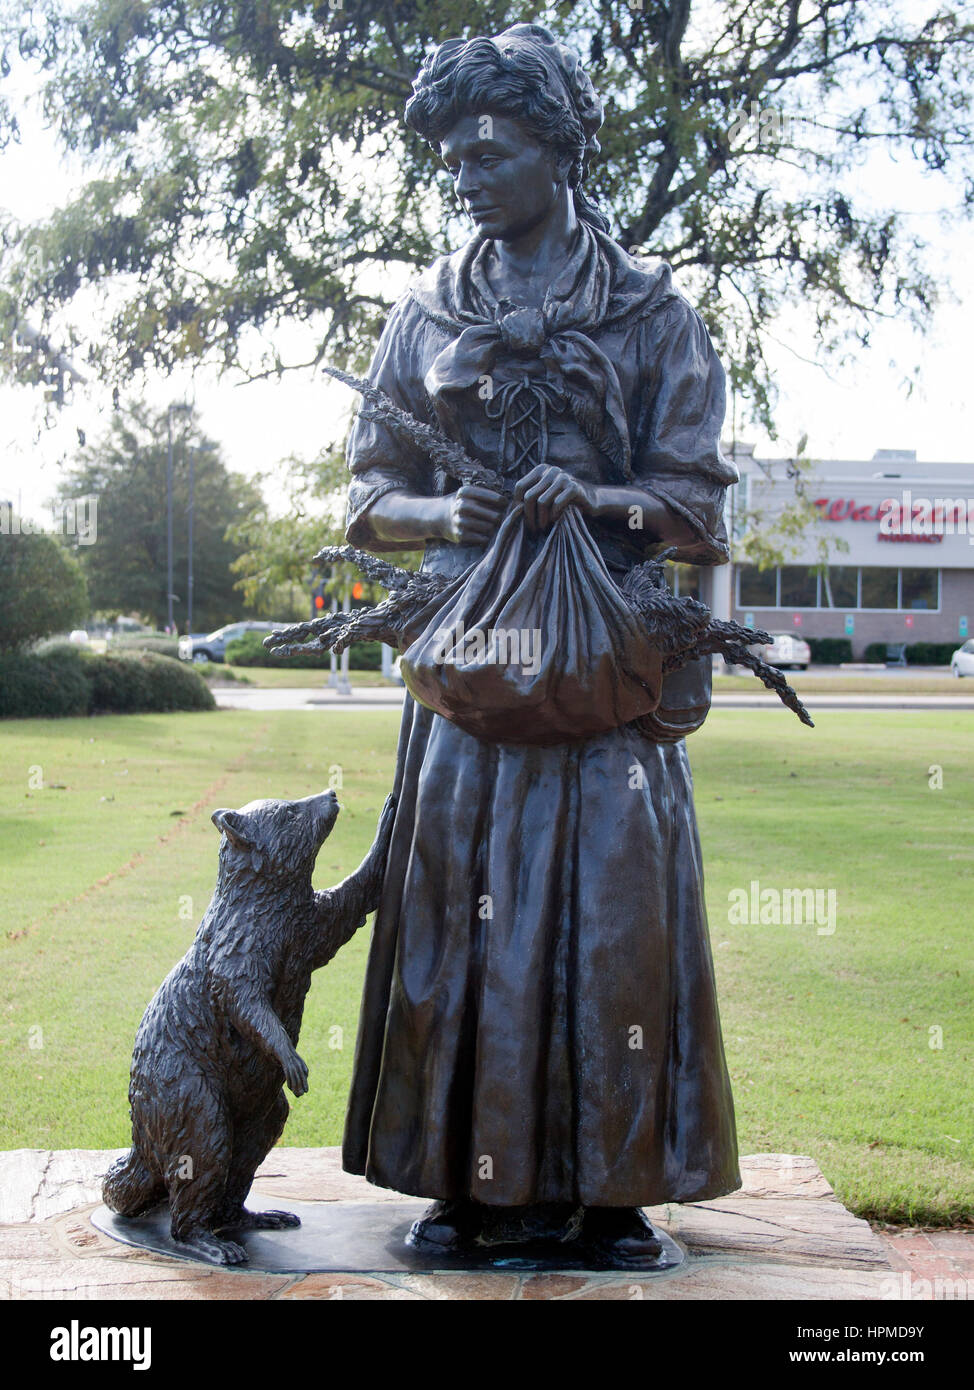 Witch of Pungo Statue in Virginia Beach - Stock Image